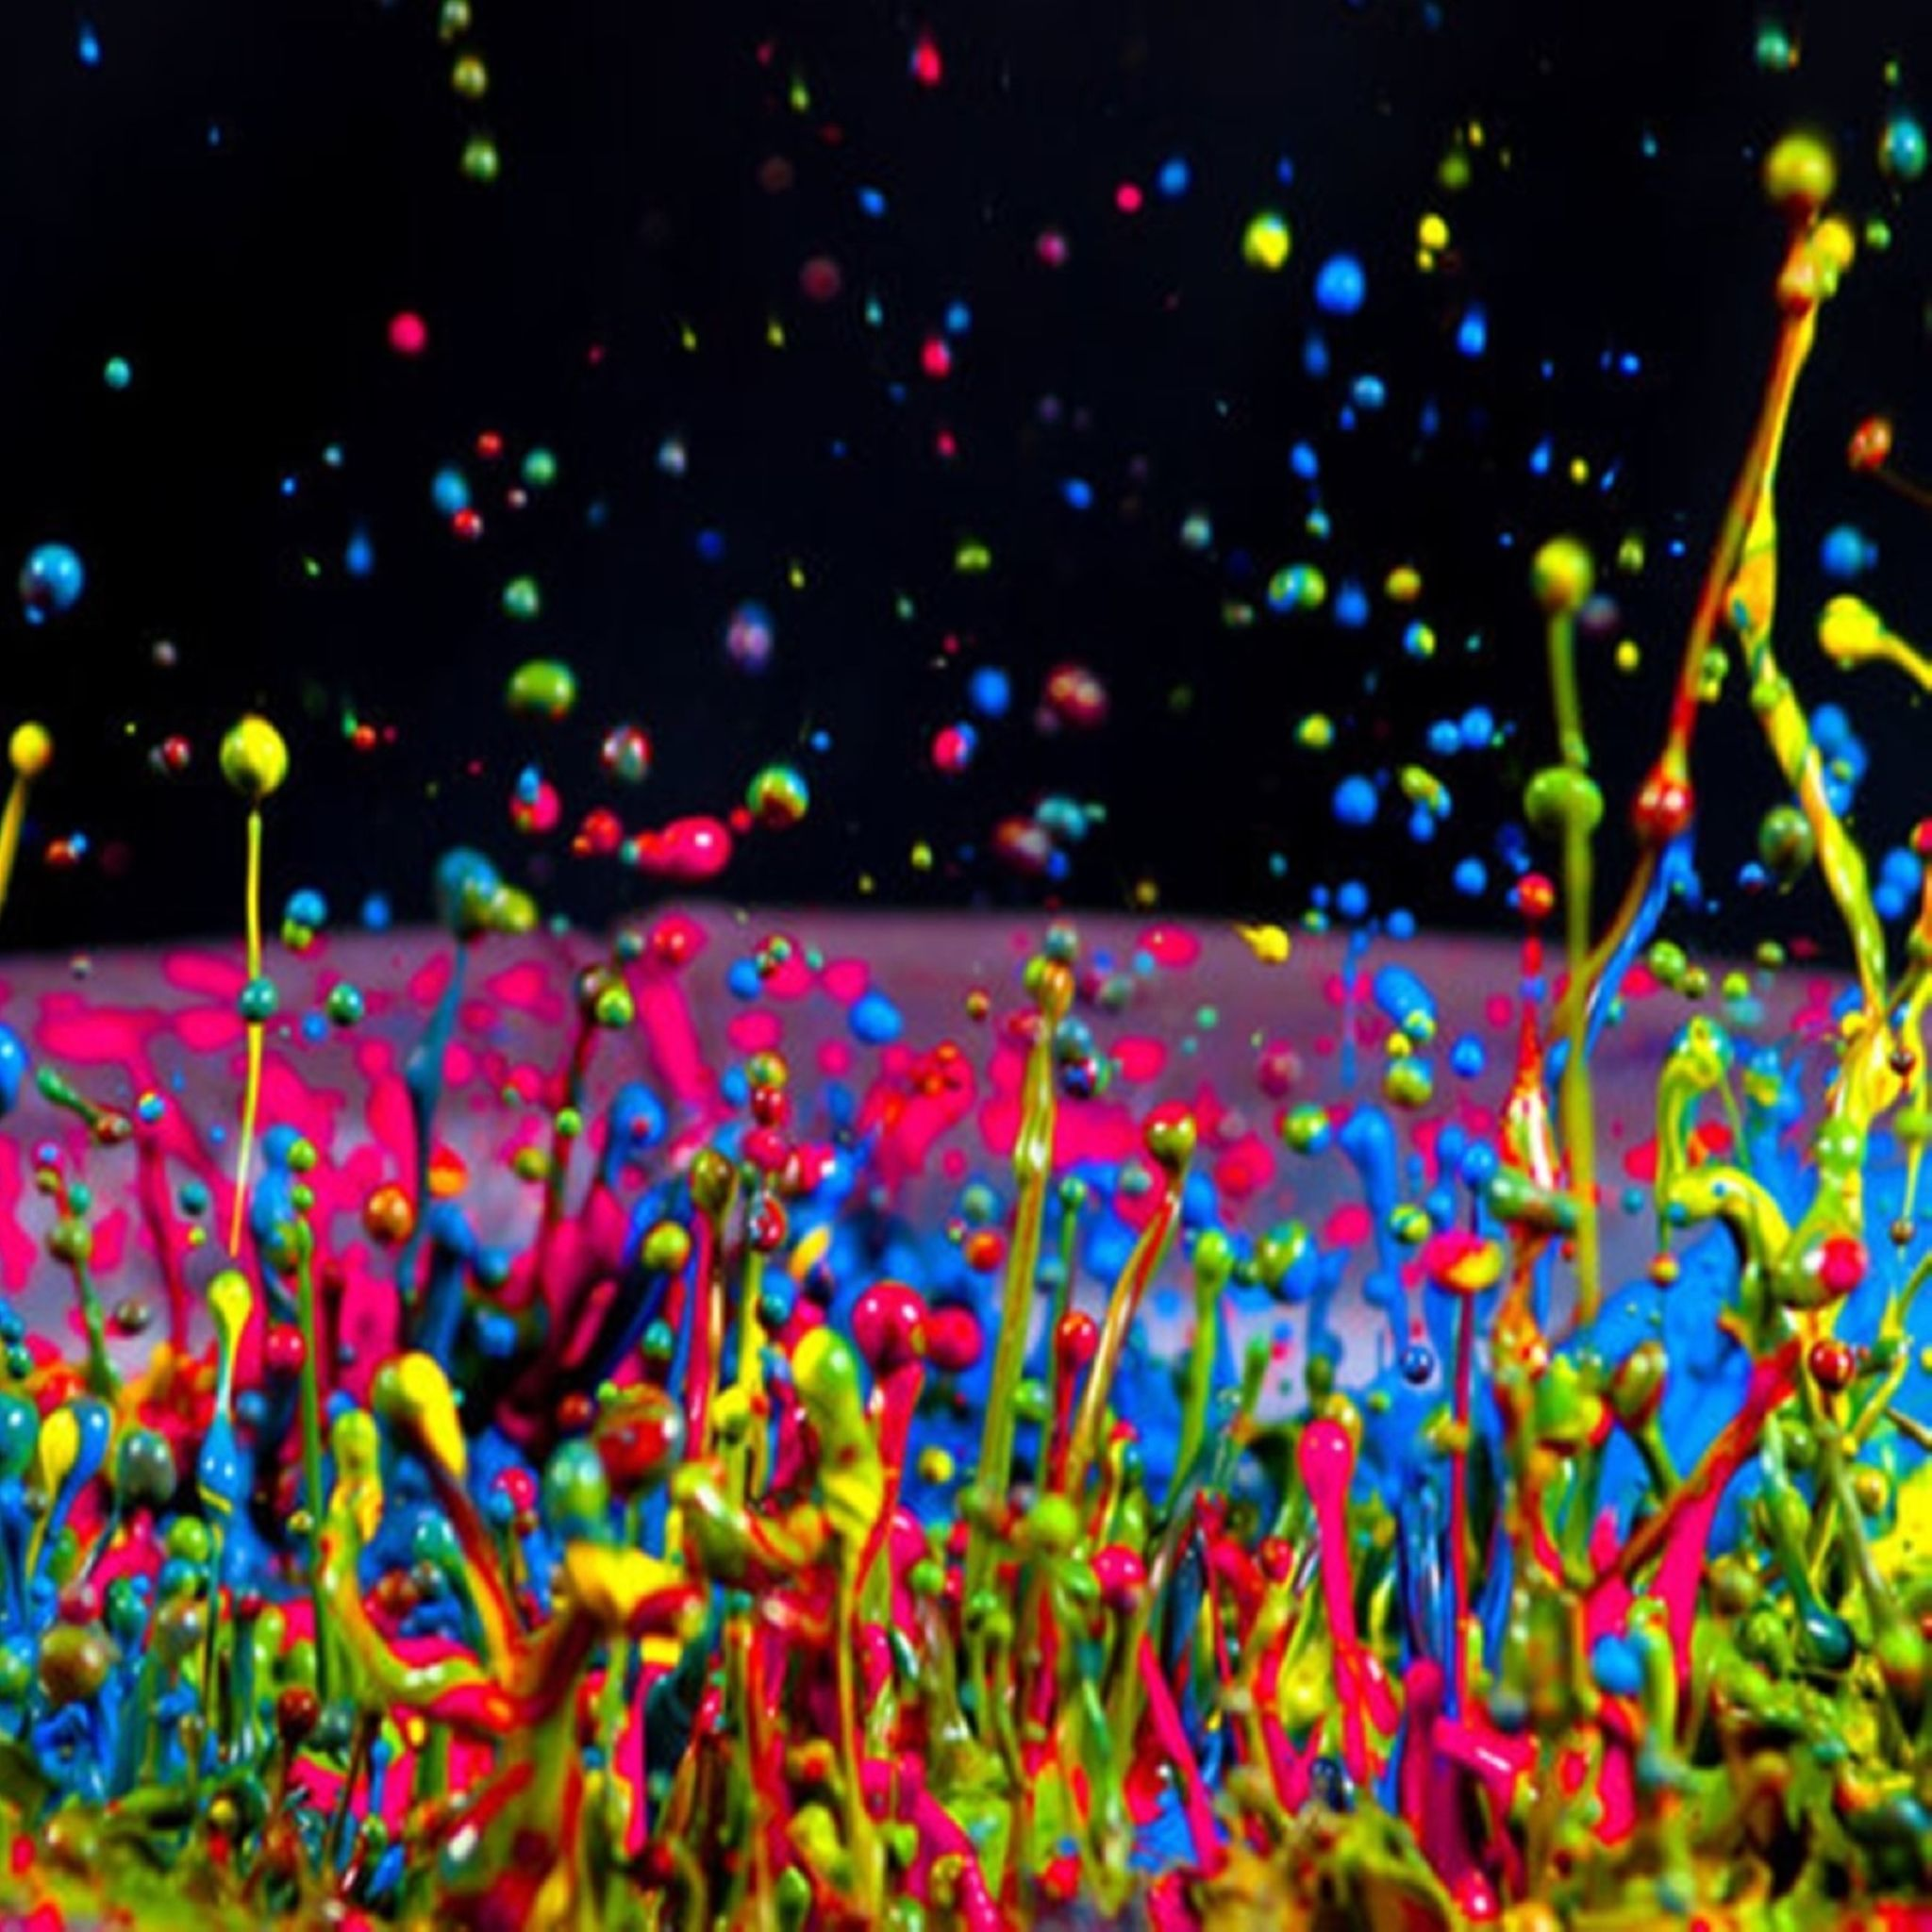 website colors neon : The Ipad Color Retina Wallpaper I Just Pinned